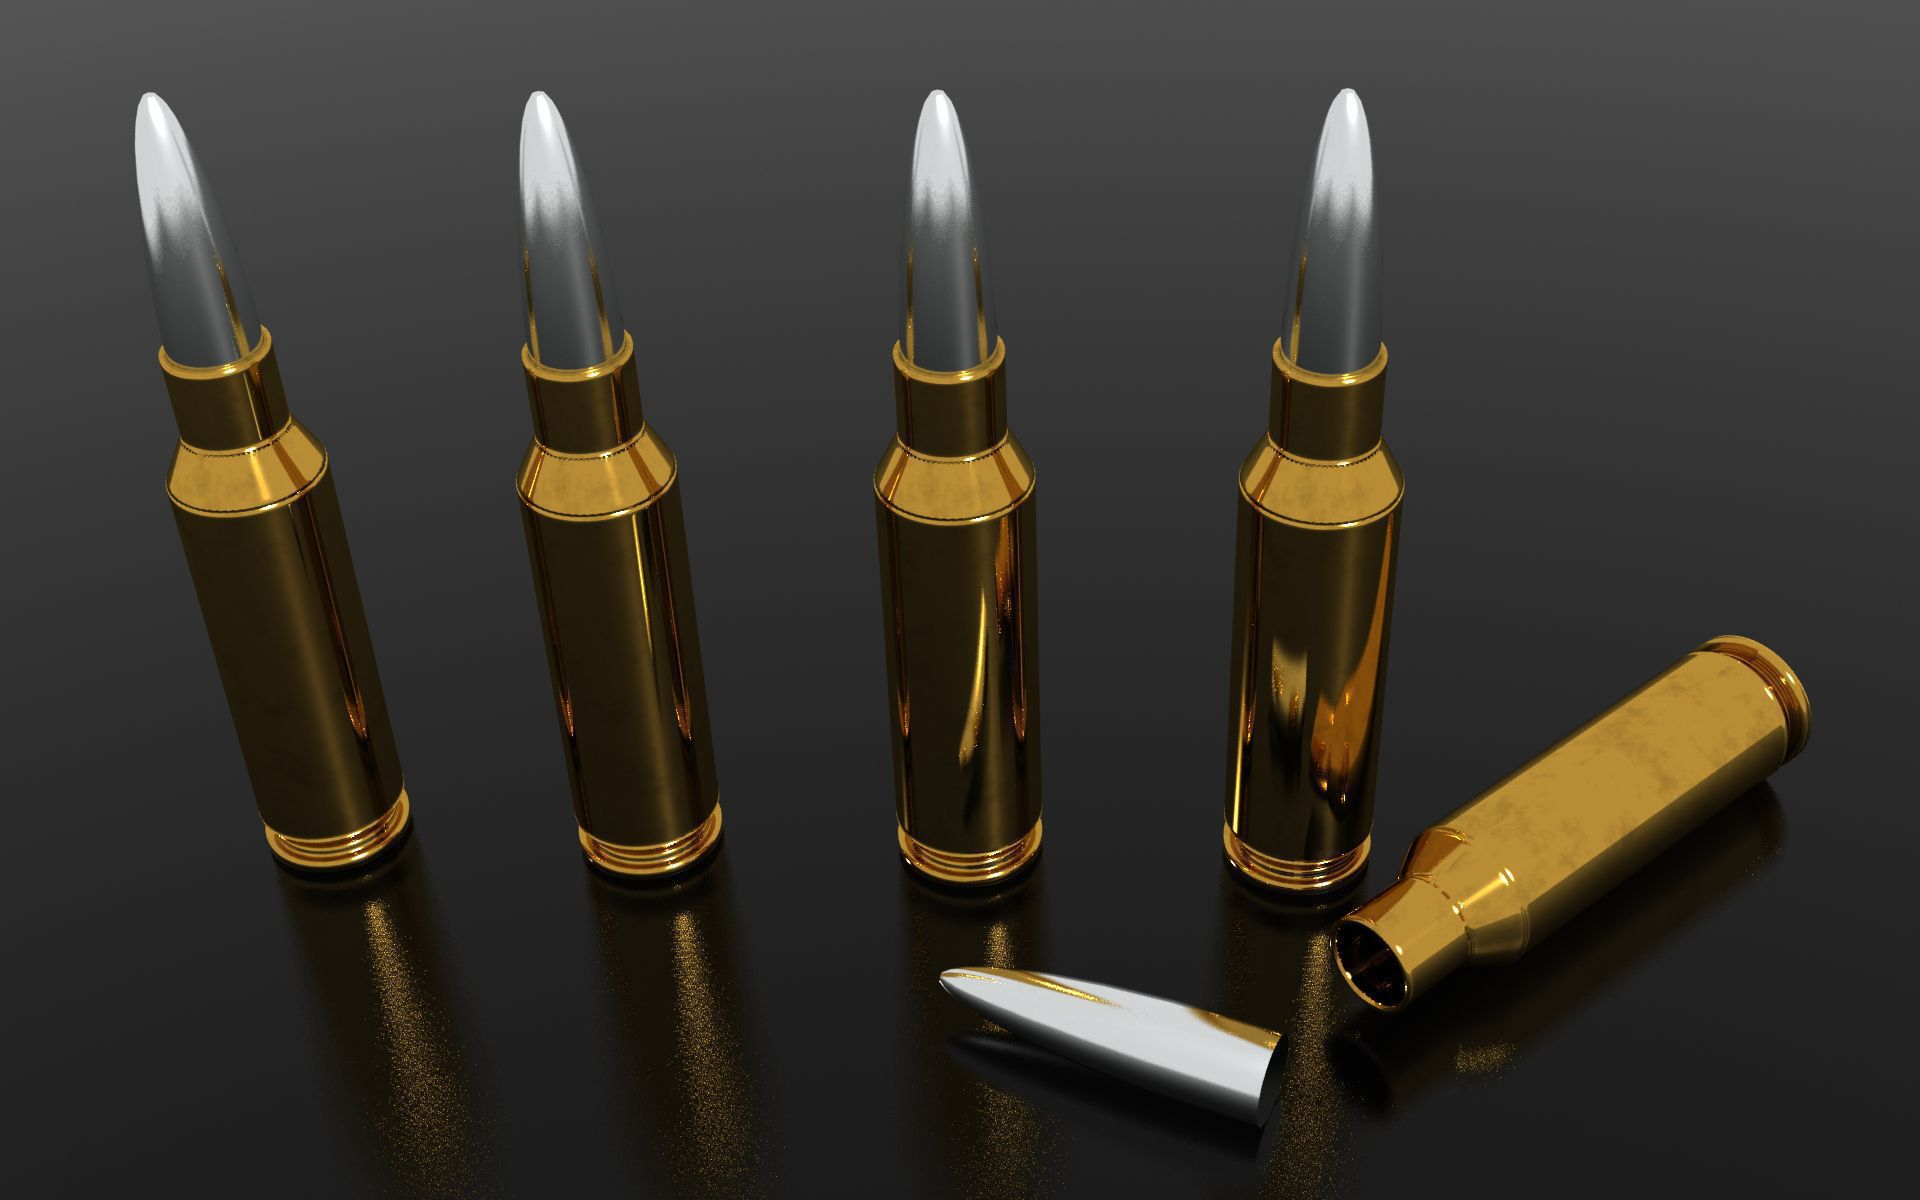 Bullets Wallpaper Pack